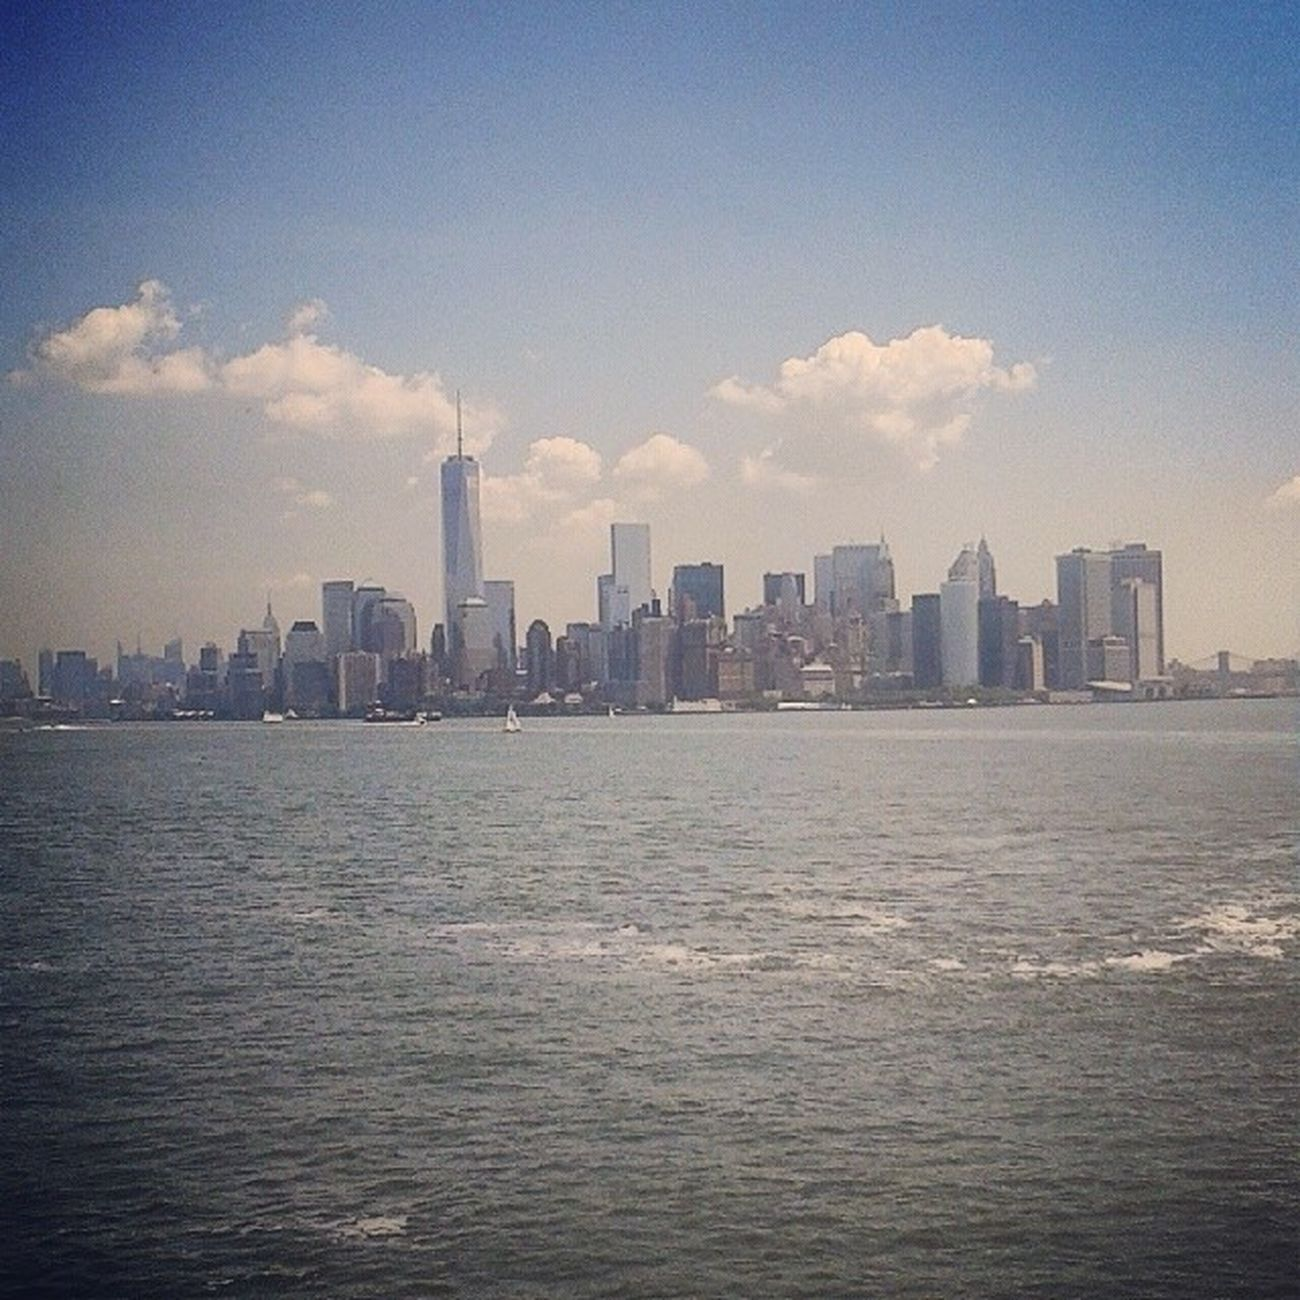 Sometimes I cant believe that I live in one of the best states in the country Schooltrip Yungin Youngboy Sus stayinschool dontbeafool schoollife schoolsucks education nyc bestcity hype cheese